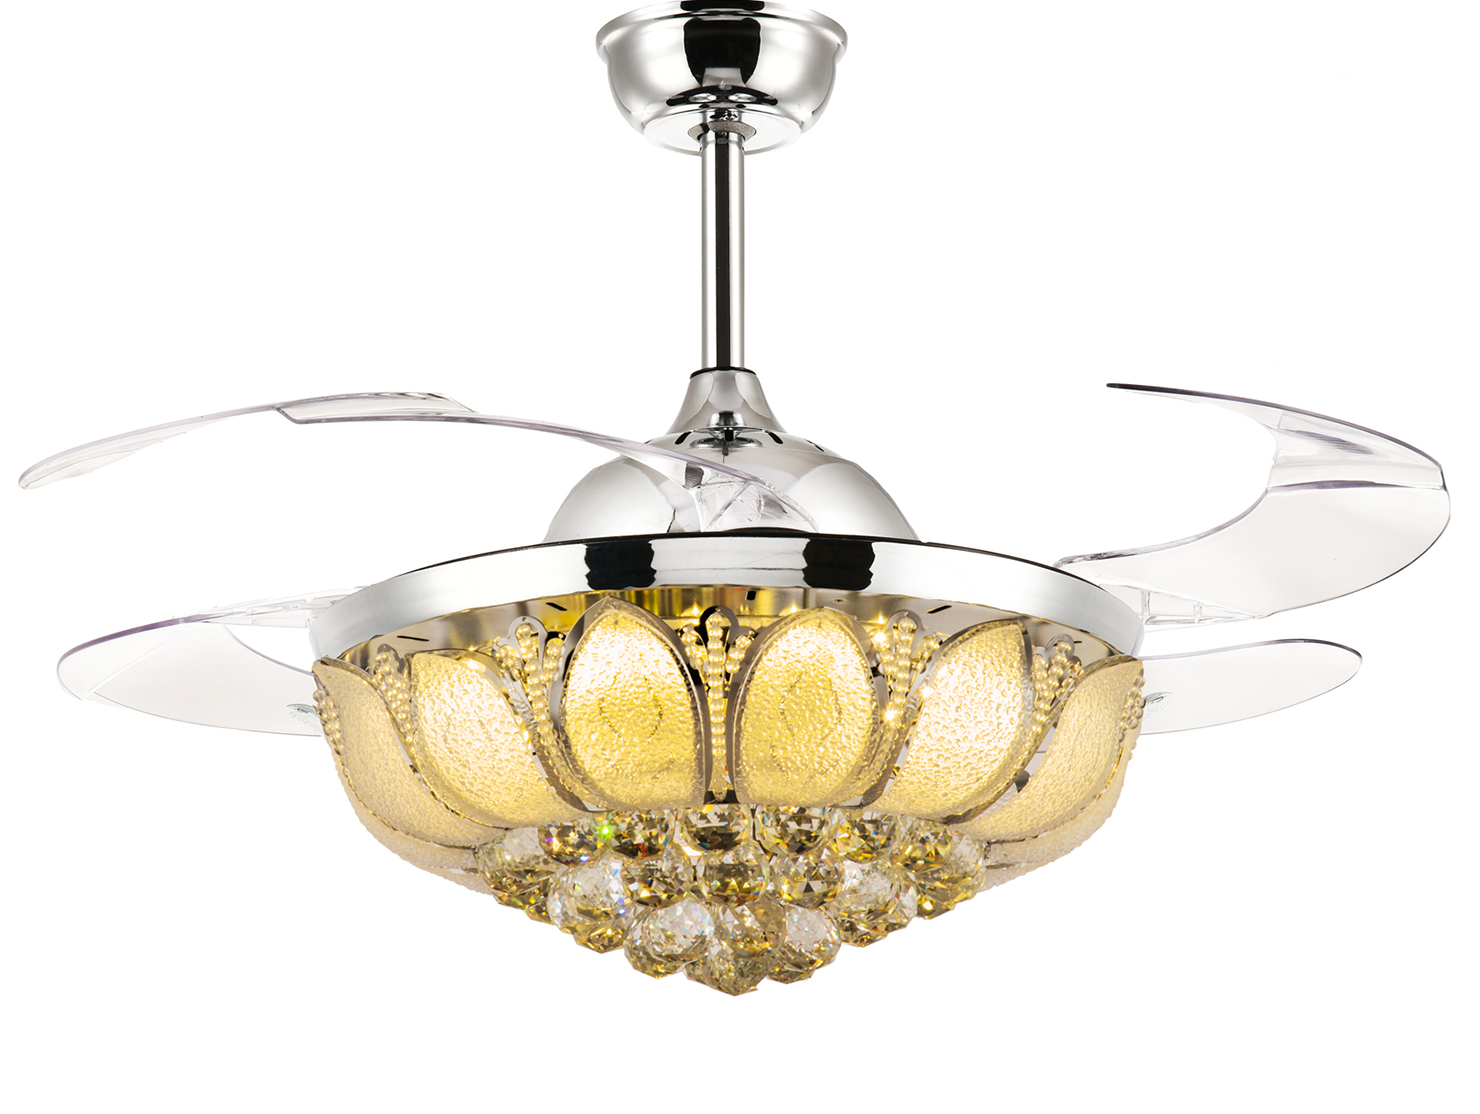 36 Quot Invisible Crystal Chandelier Ceiling Fan With Lights And Retractable Blades Ebay